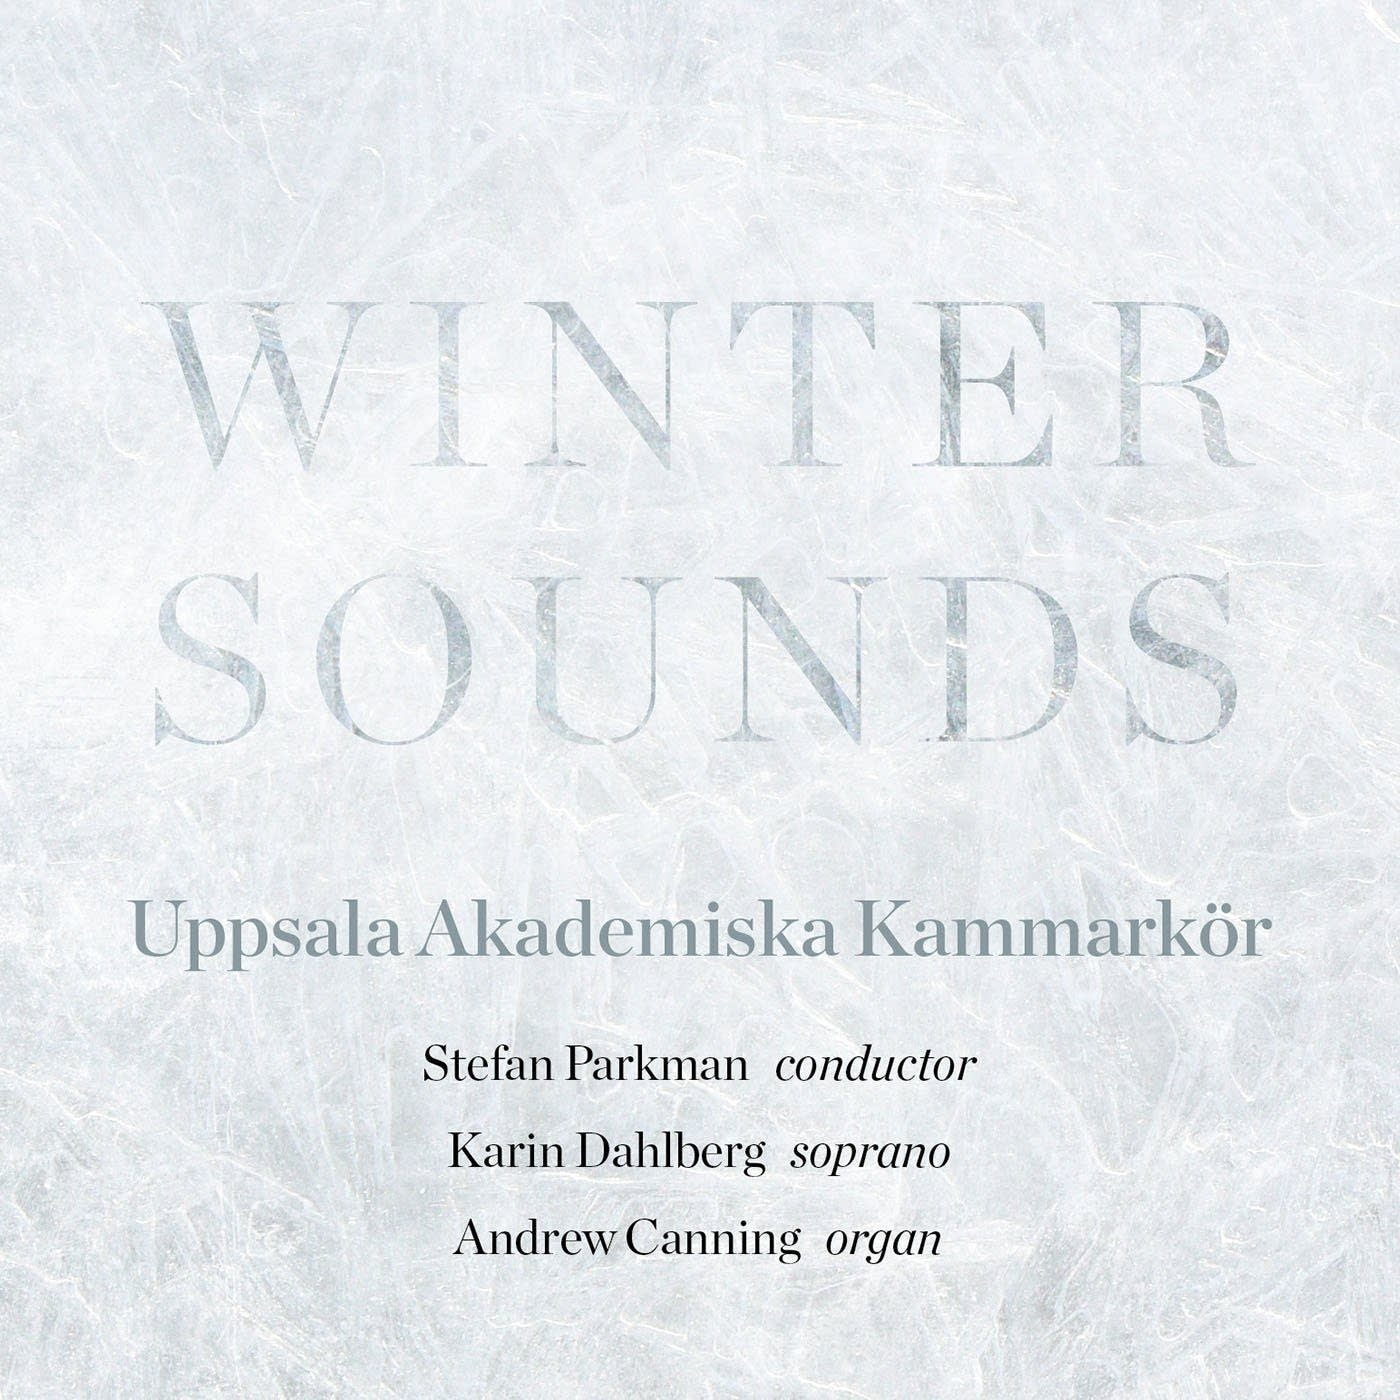 Uppsala Academic Chmbr Choir, 'Winter Sounds'